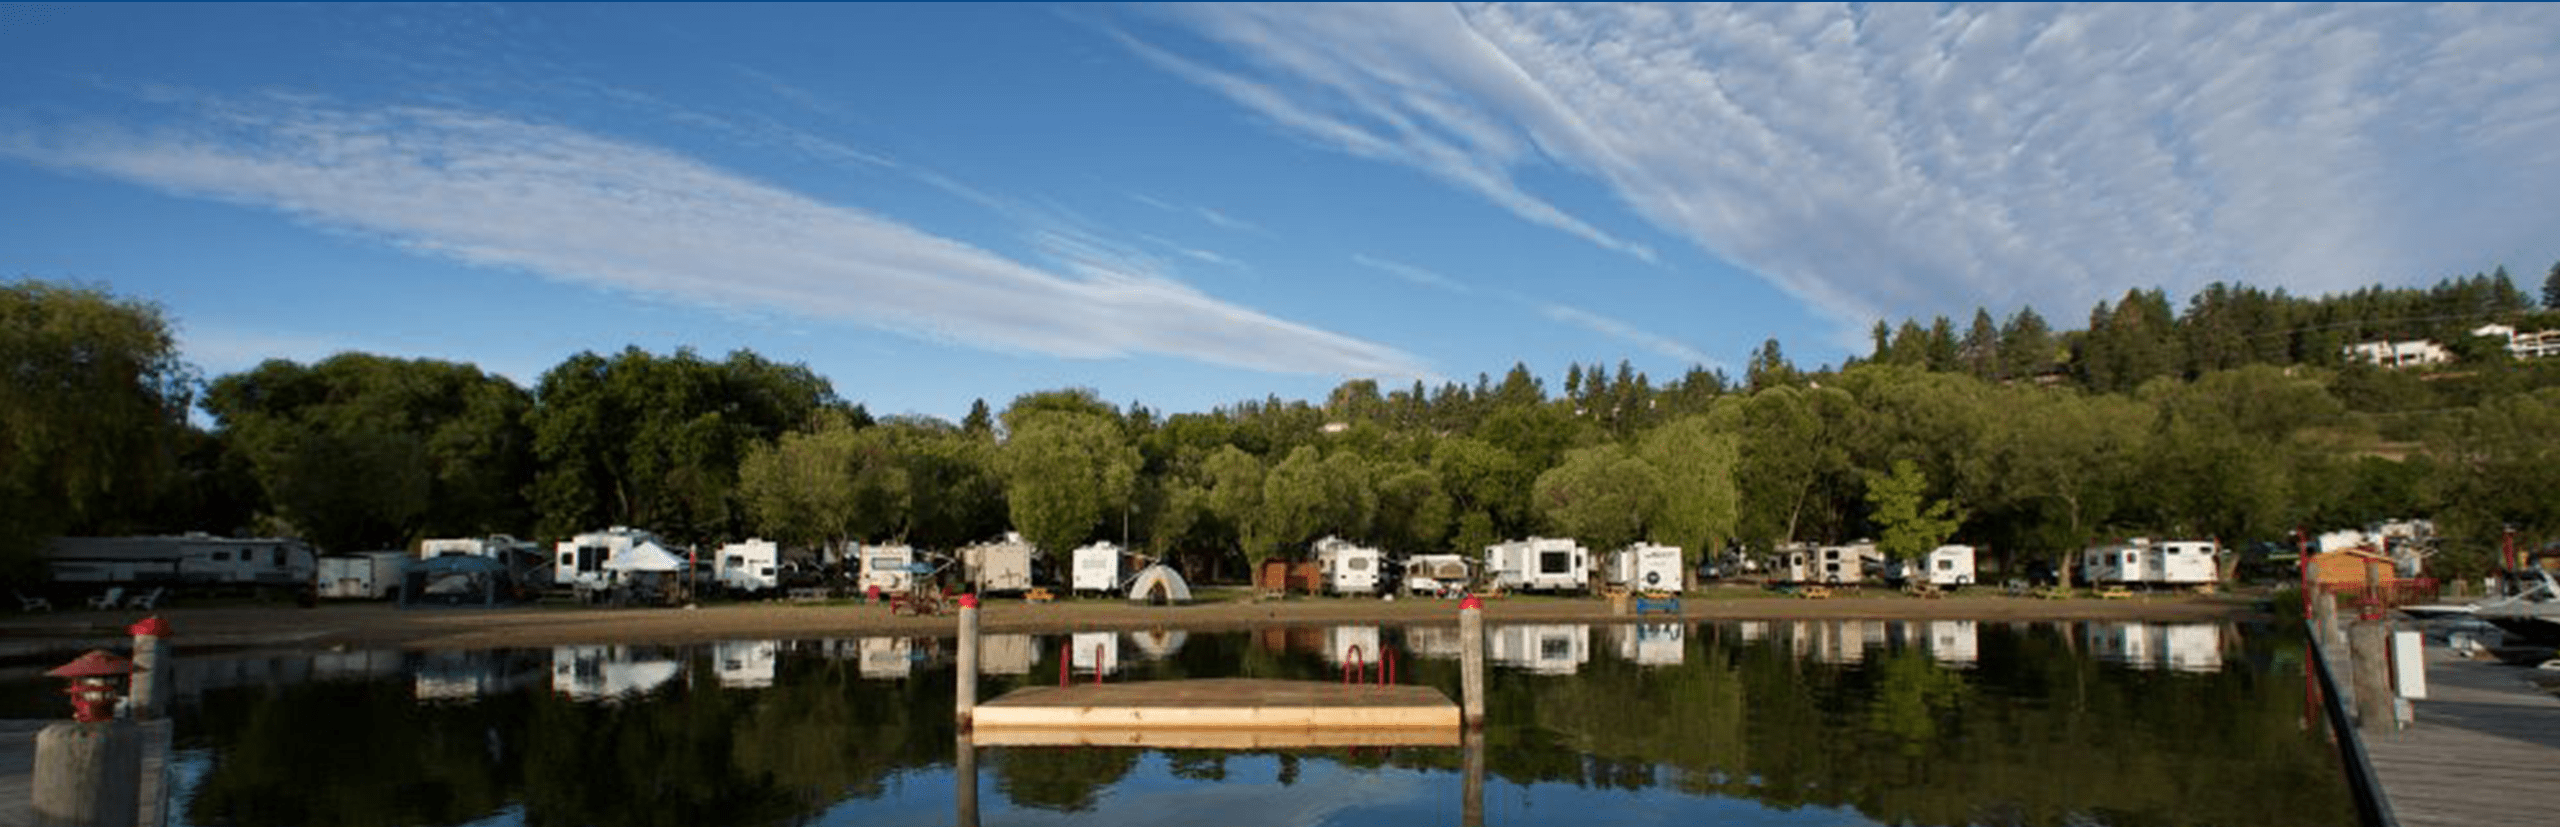 CAMPING & RVING IN BC GO WHERE YOUR SPIRIT TAKES YOU!